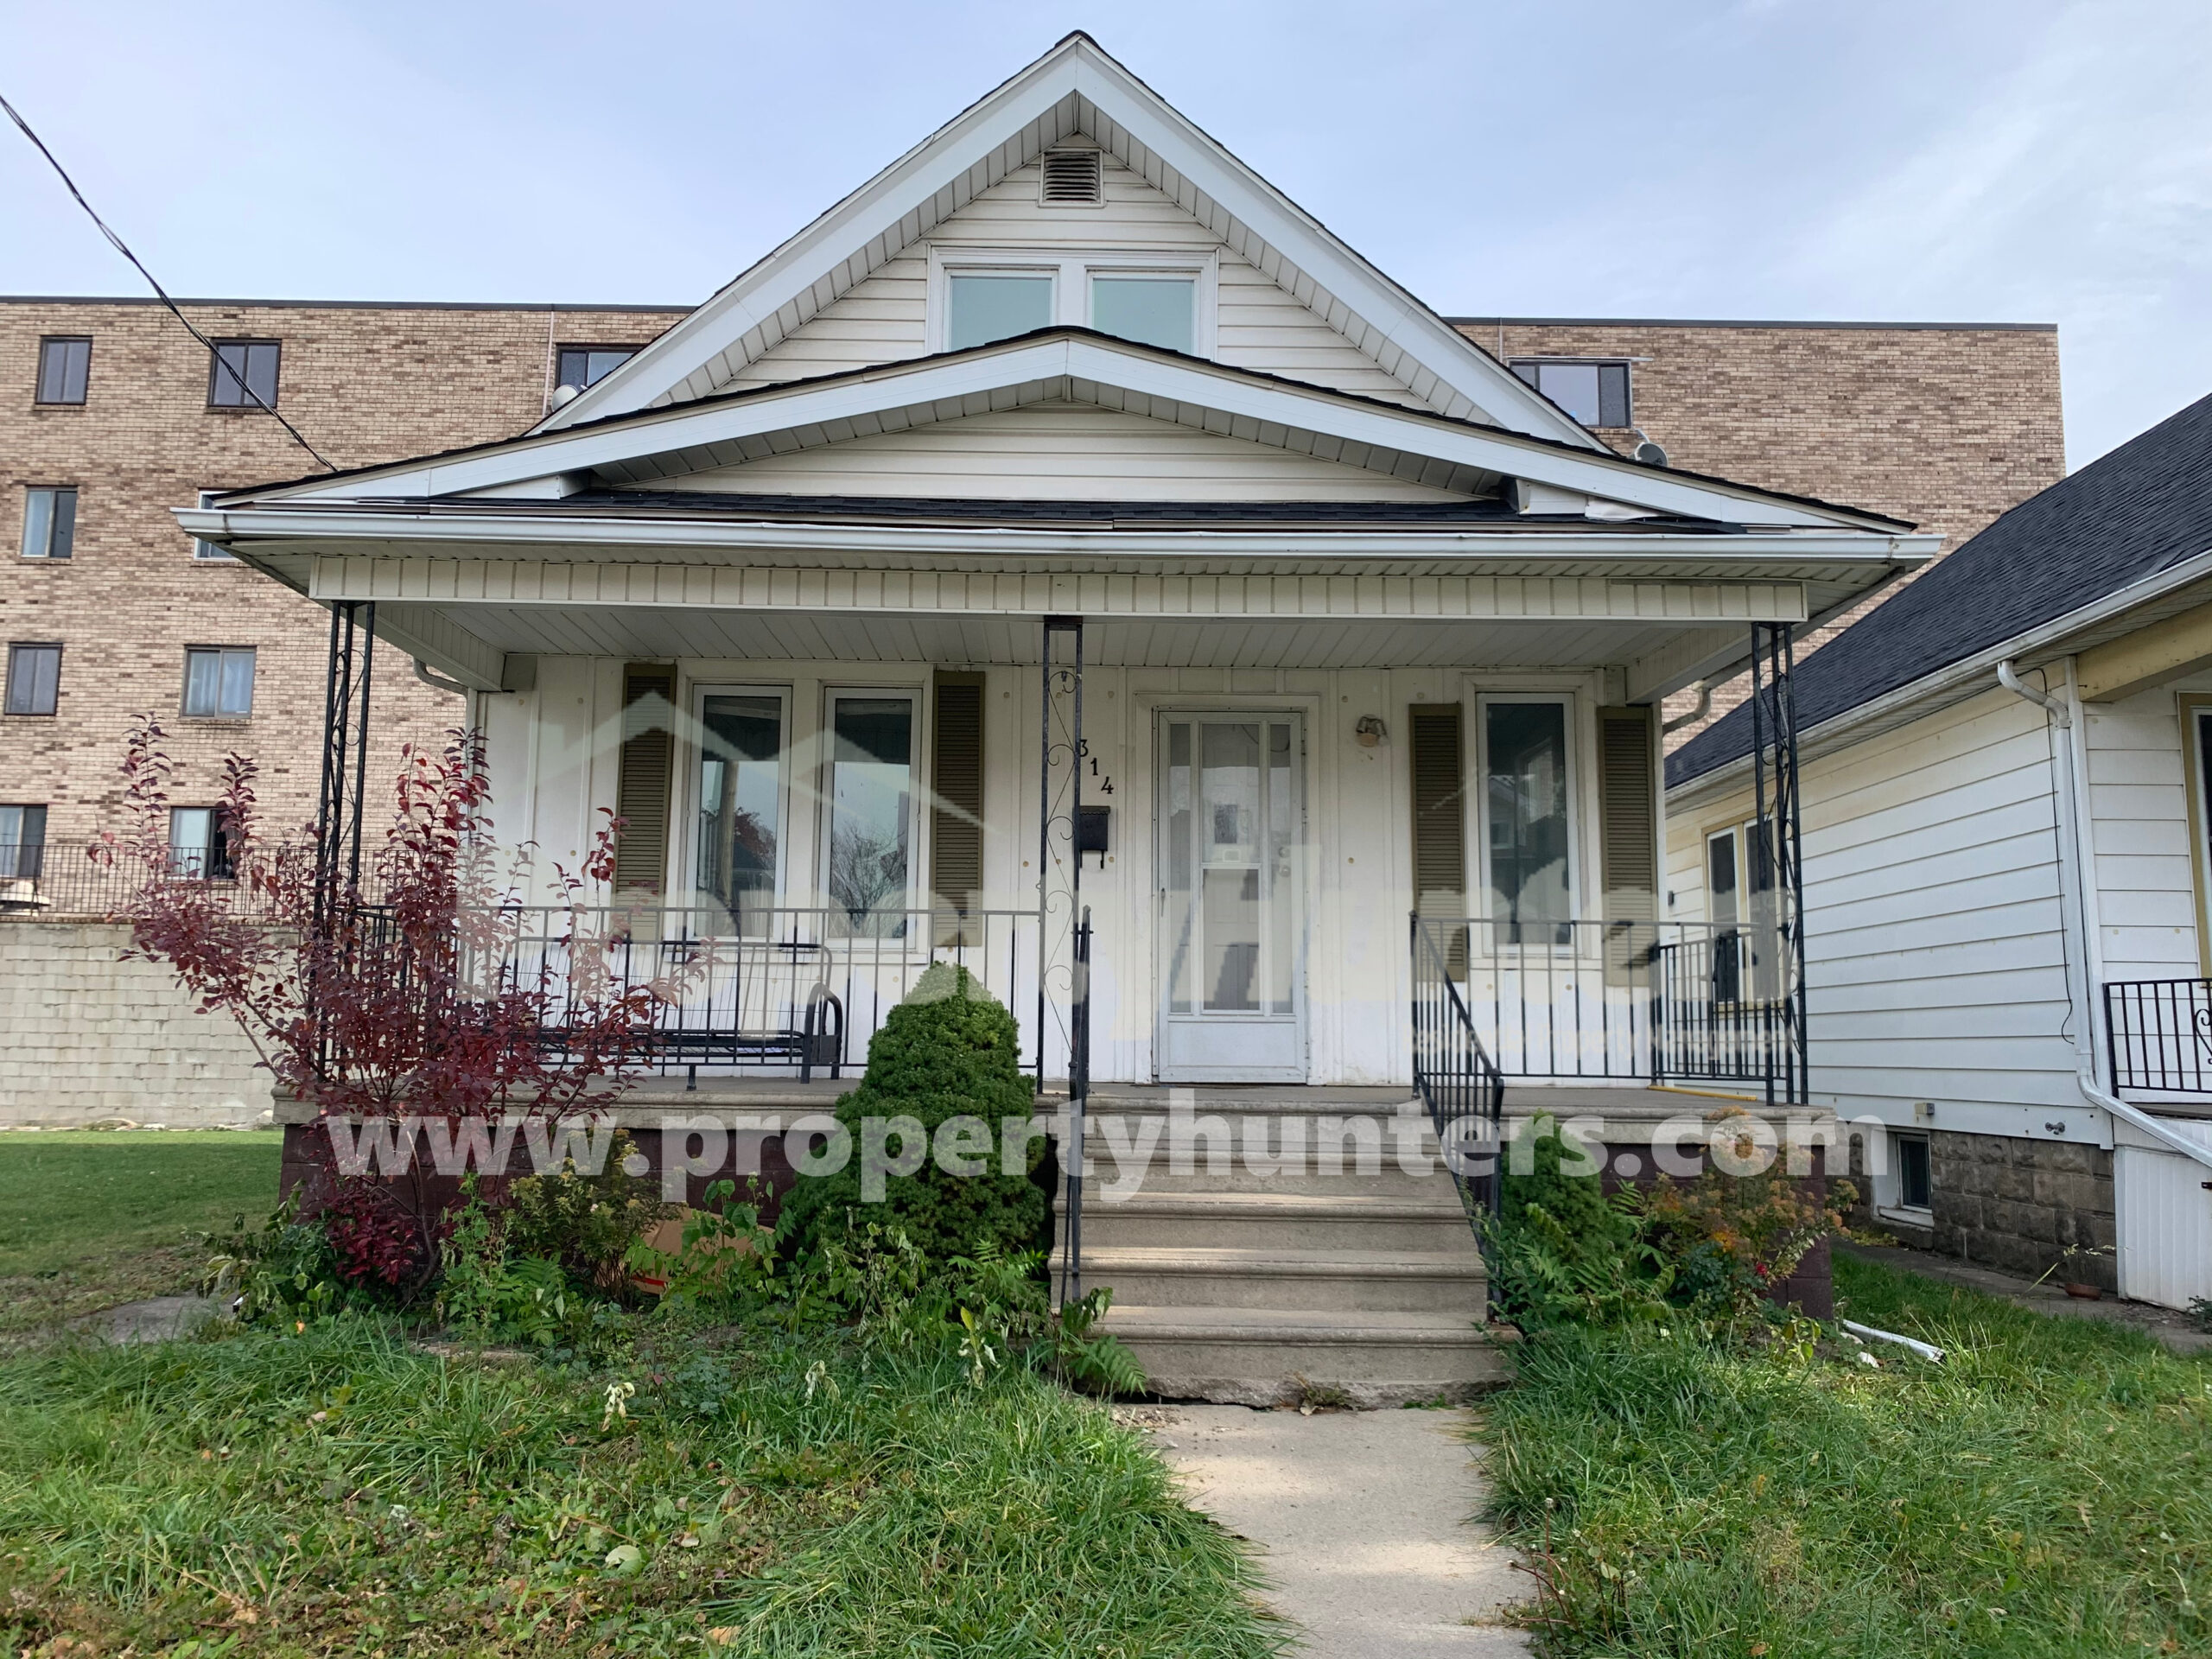 TOTALLY RENOVATED BUNGALOW WITH PLENTY OF LIGHT ON WEST END